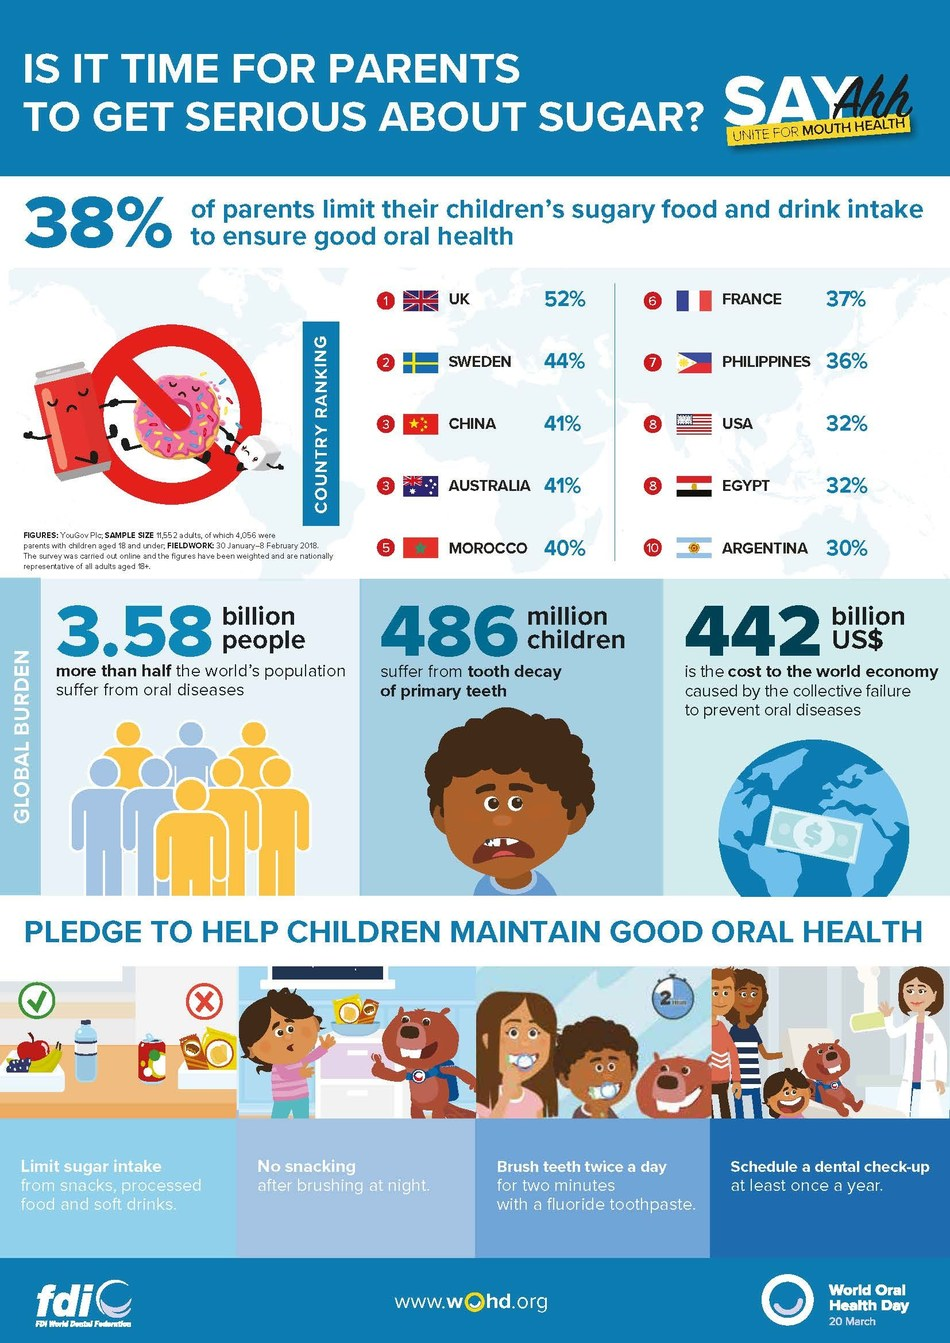 World Oral Health Day 2020: is it time for parents to get serious about sugar?